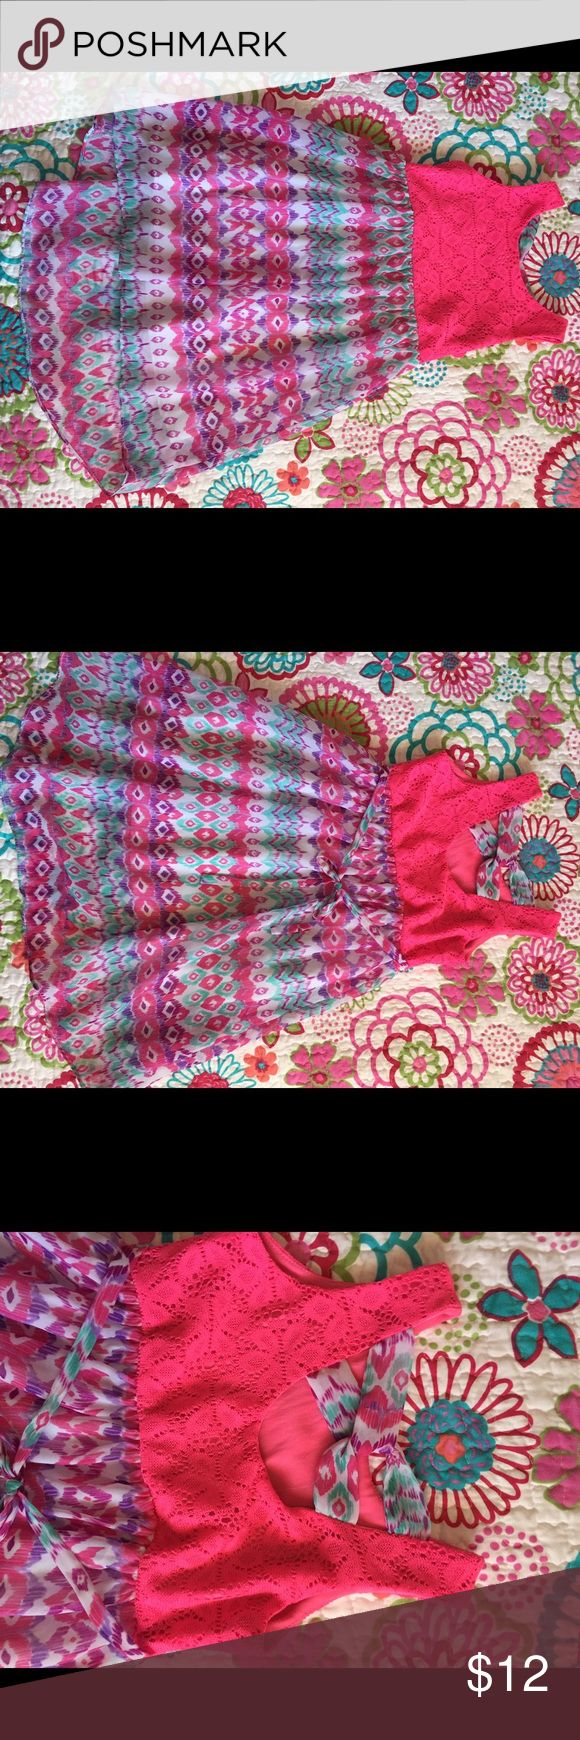 Young Land Dress Cute dress with hot pink crocheted top and purple, pink and green patterned skirt. Small snag in Skirt hardly noticeable. Youngland Dresses Casual